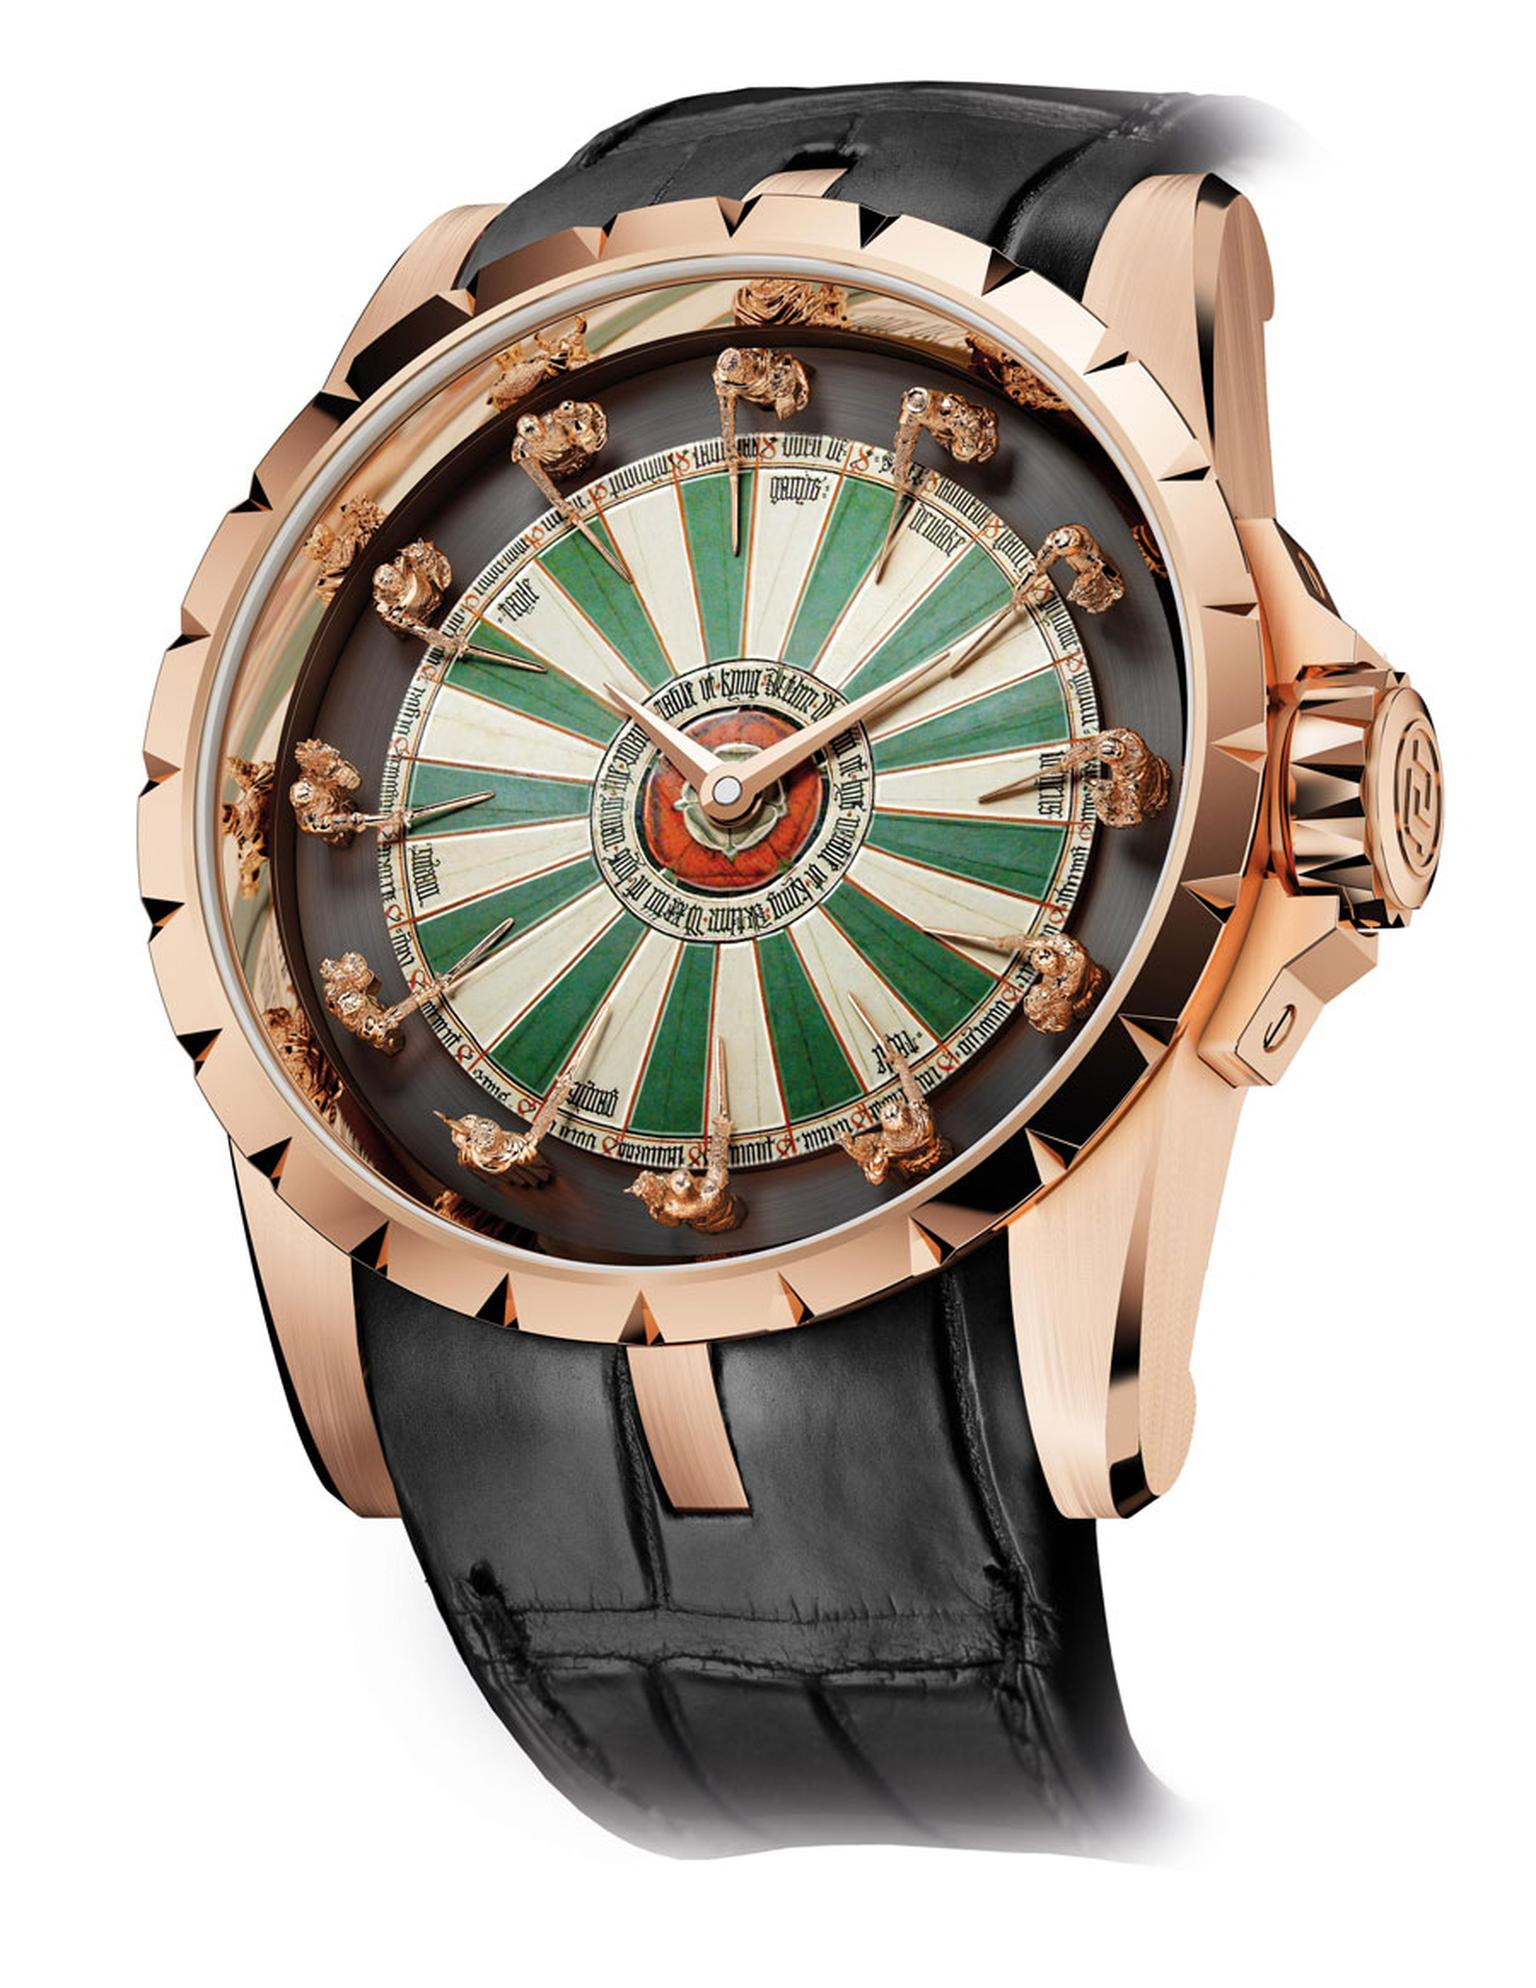 Roger-Dubuis-Excalibur-Table-Ronde.jpg